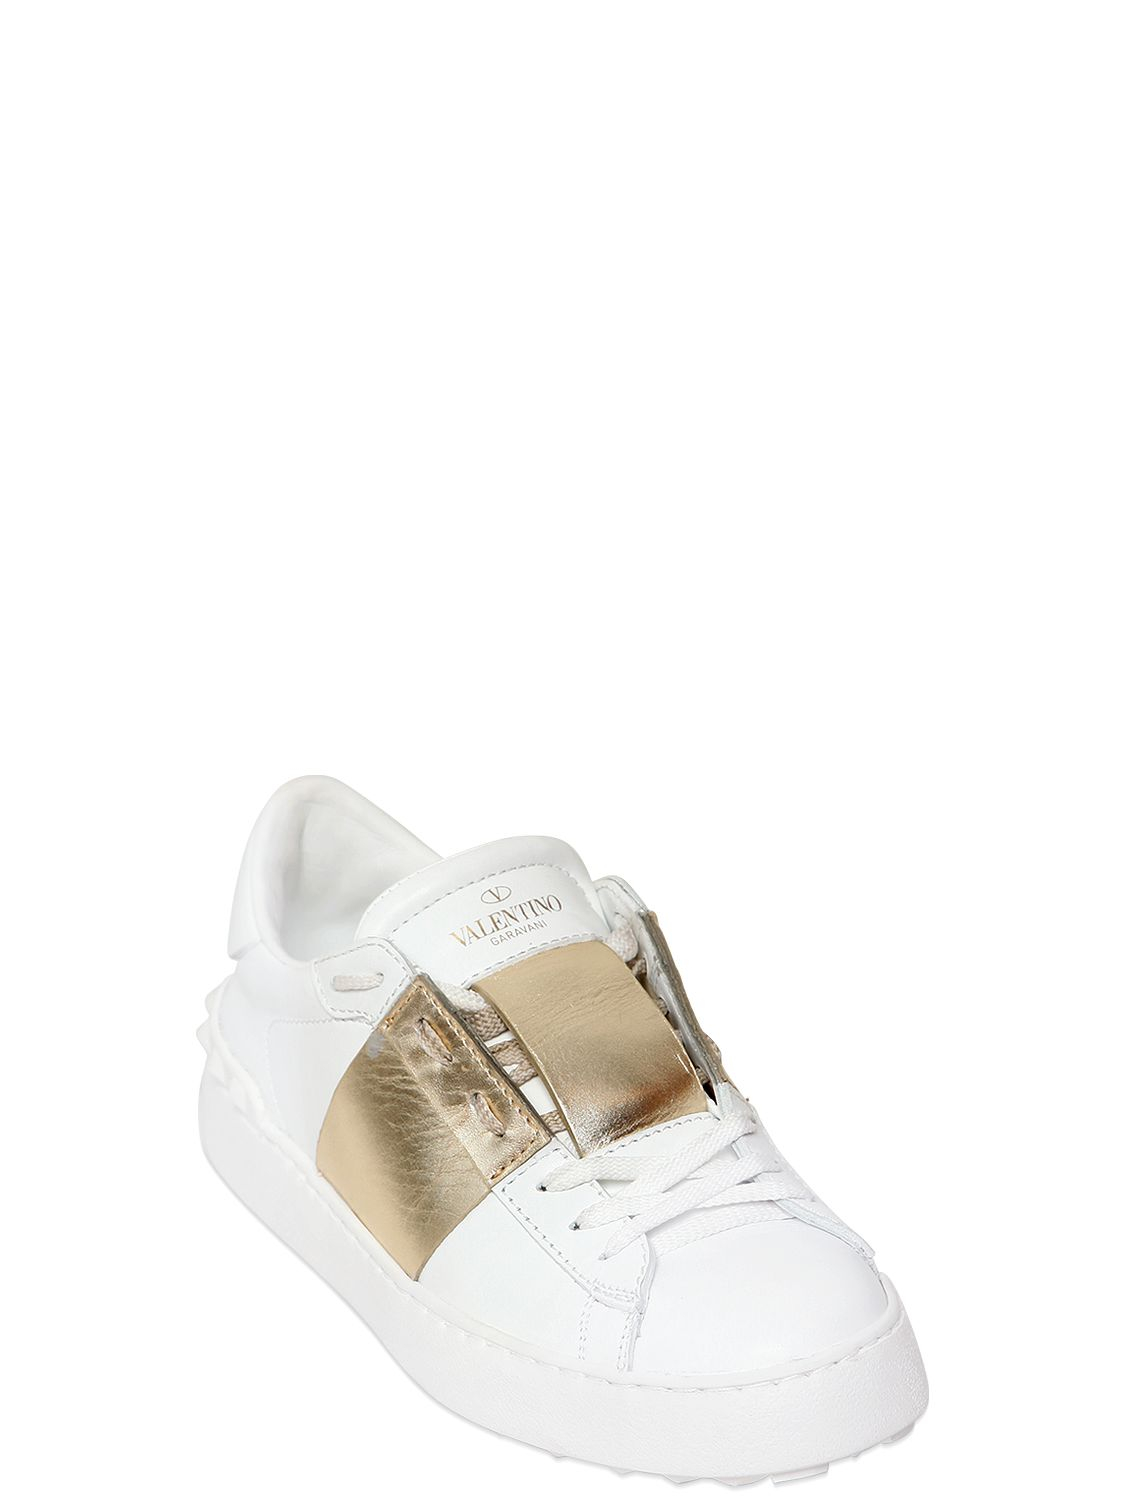 valentino open leather sneakers with metallic band in